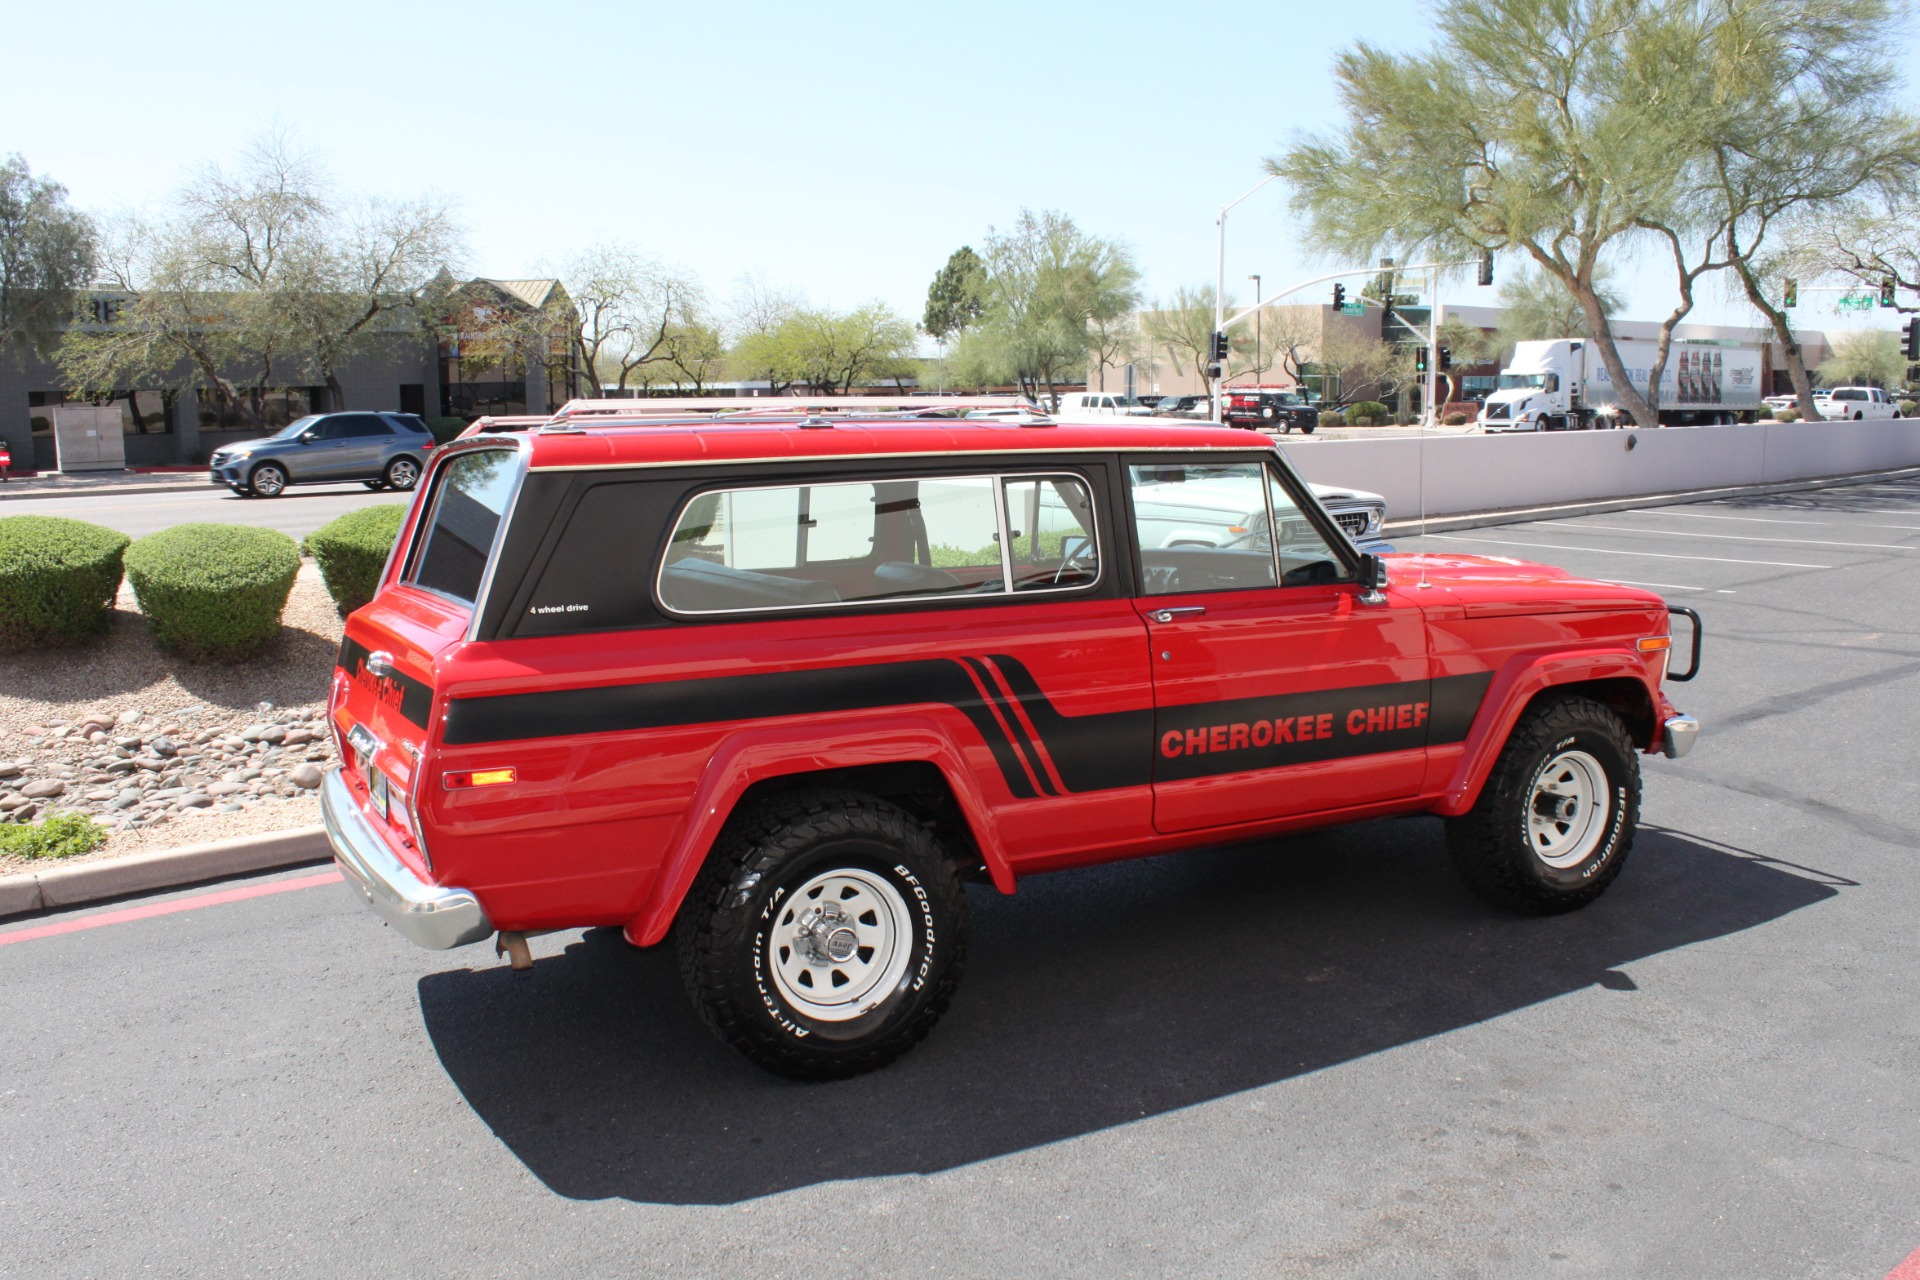 Used-1983-Jeep-Cherokee-4WD-Chief-Chalenger